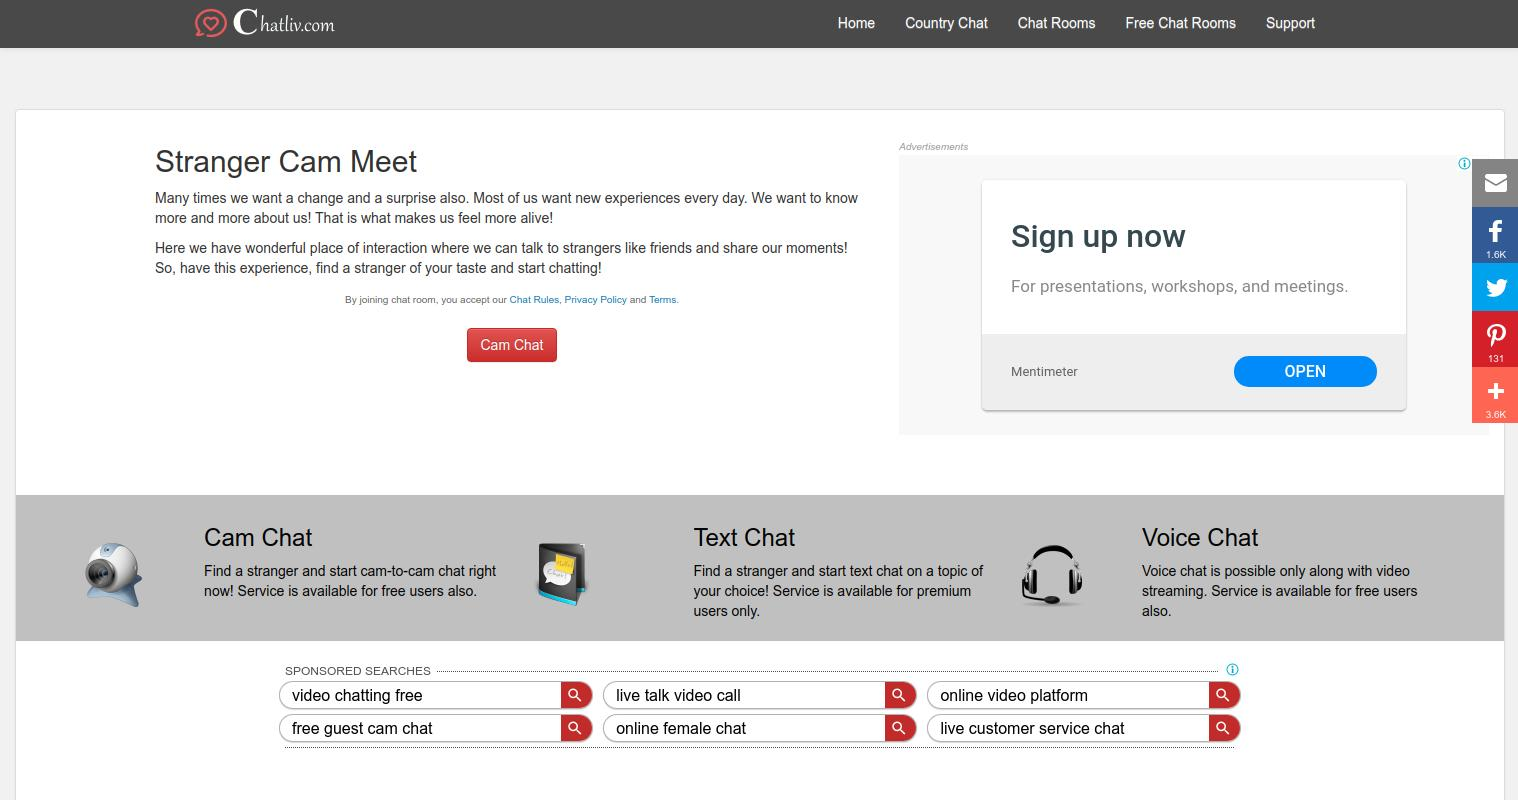 Chatliv Home Page Screenshot